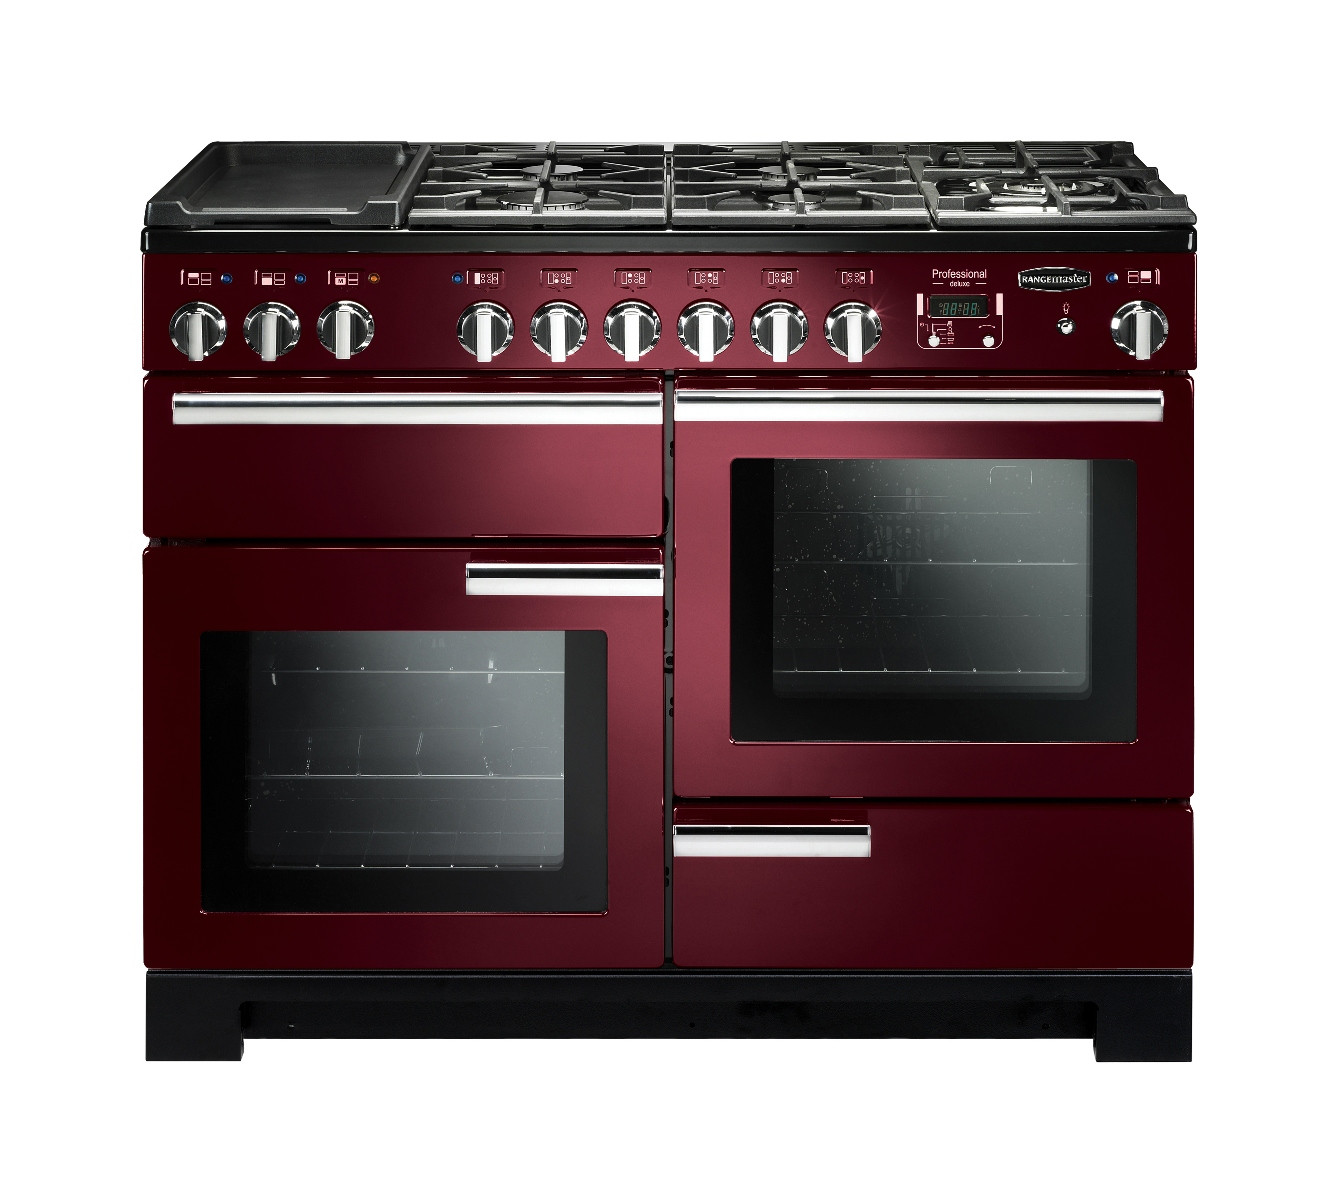 Rangemaster Professional Deluxe 110 Dual Fuel Cranberry Range Cooker PDL110DFFCY/C 97540